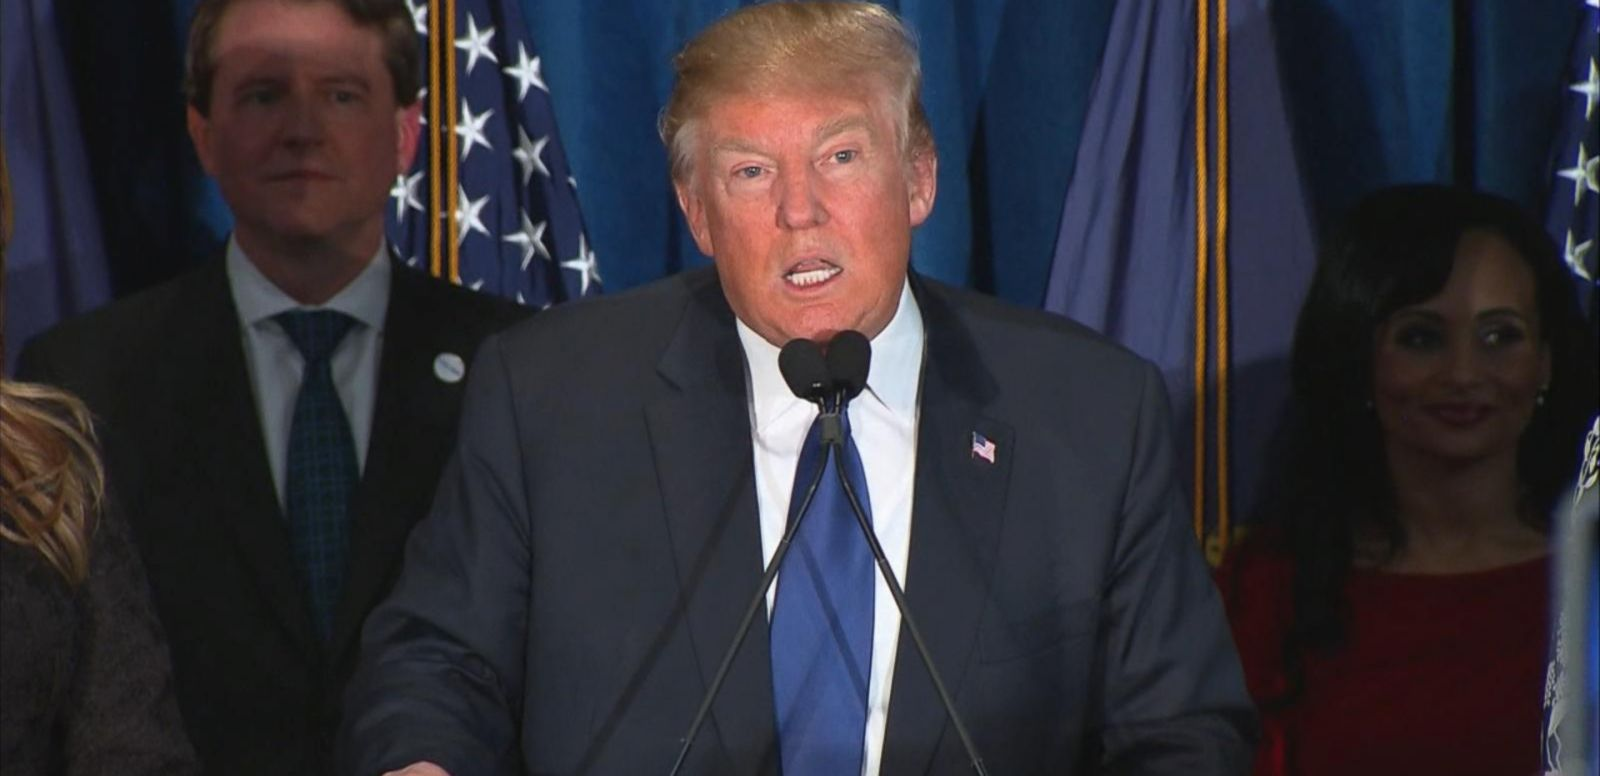 VIDEO: Trump Projected to Win Republican New Hampshire Primary